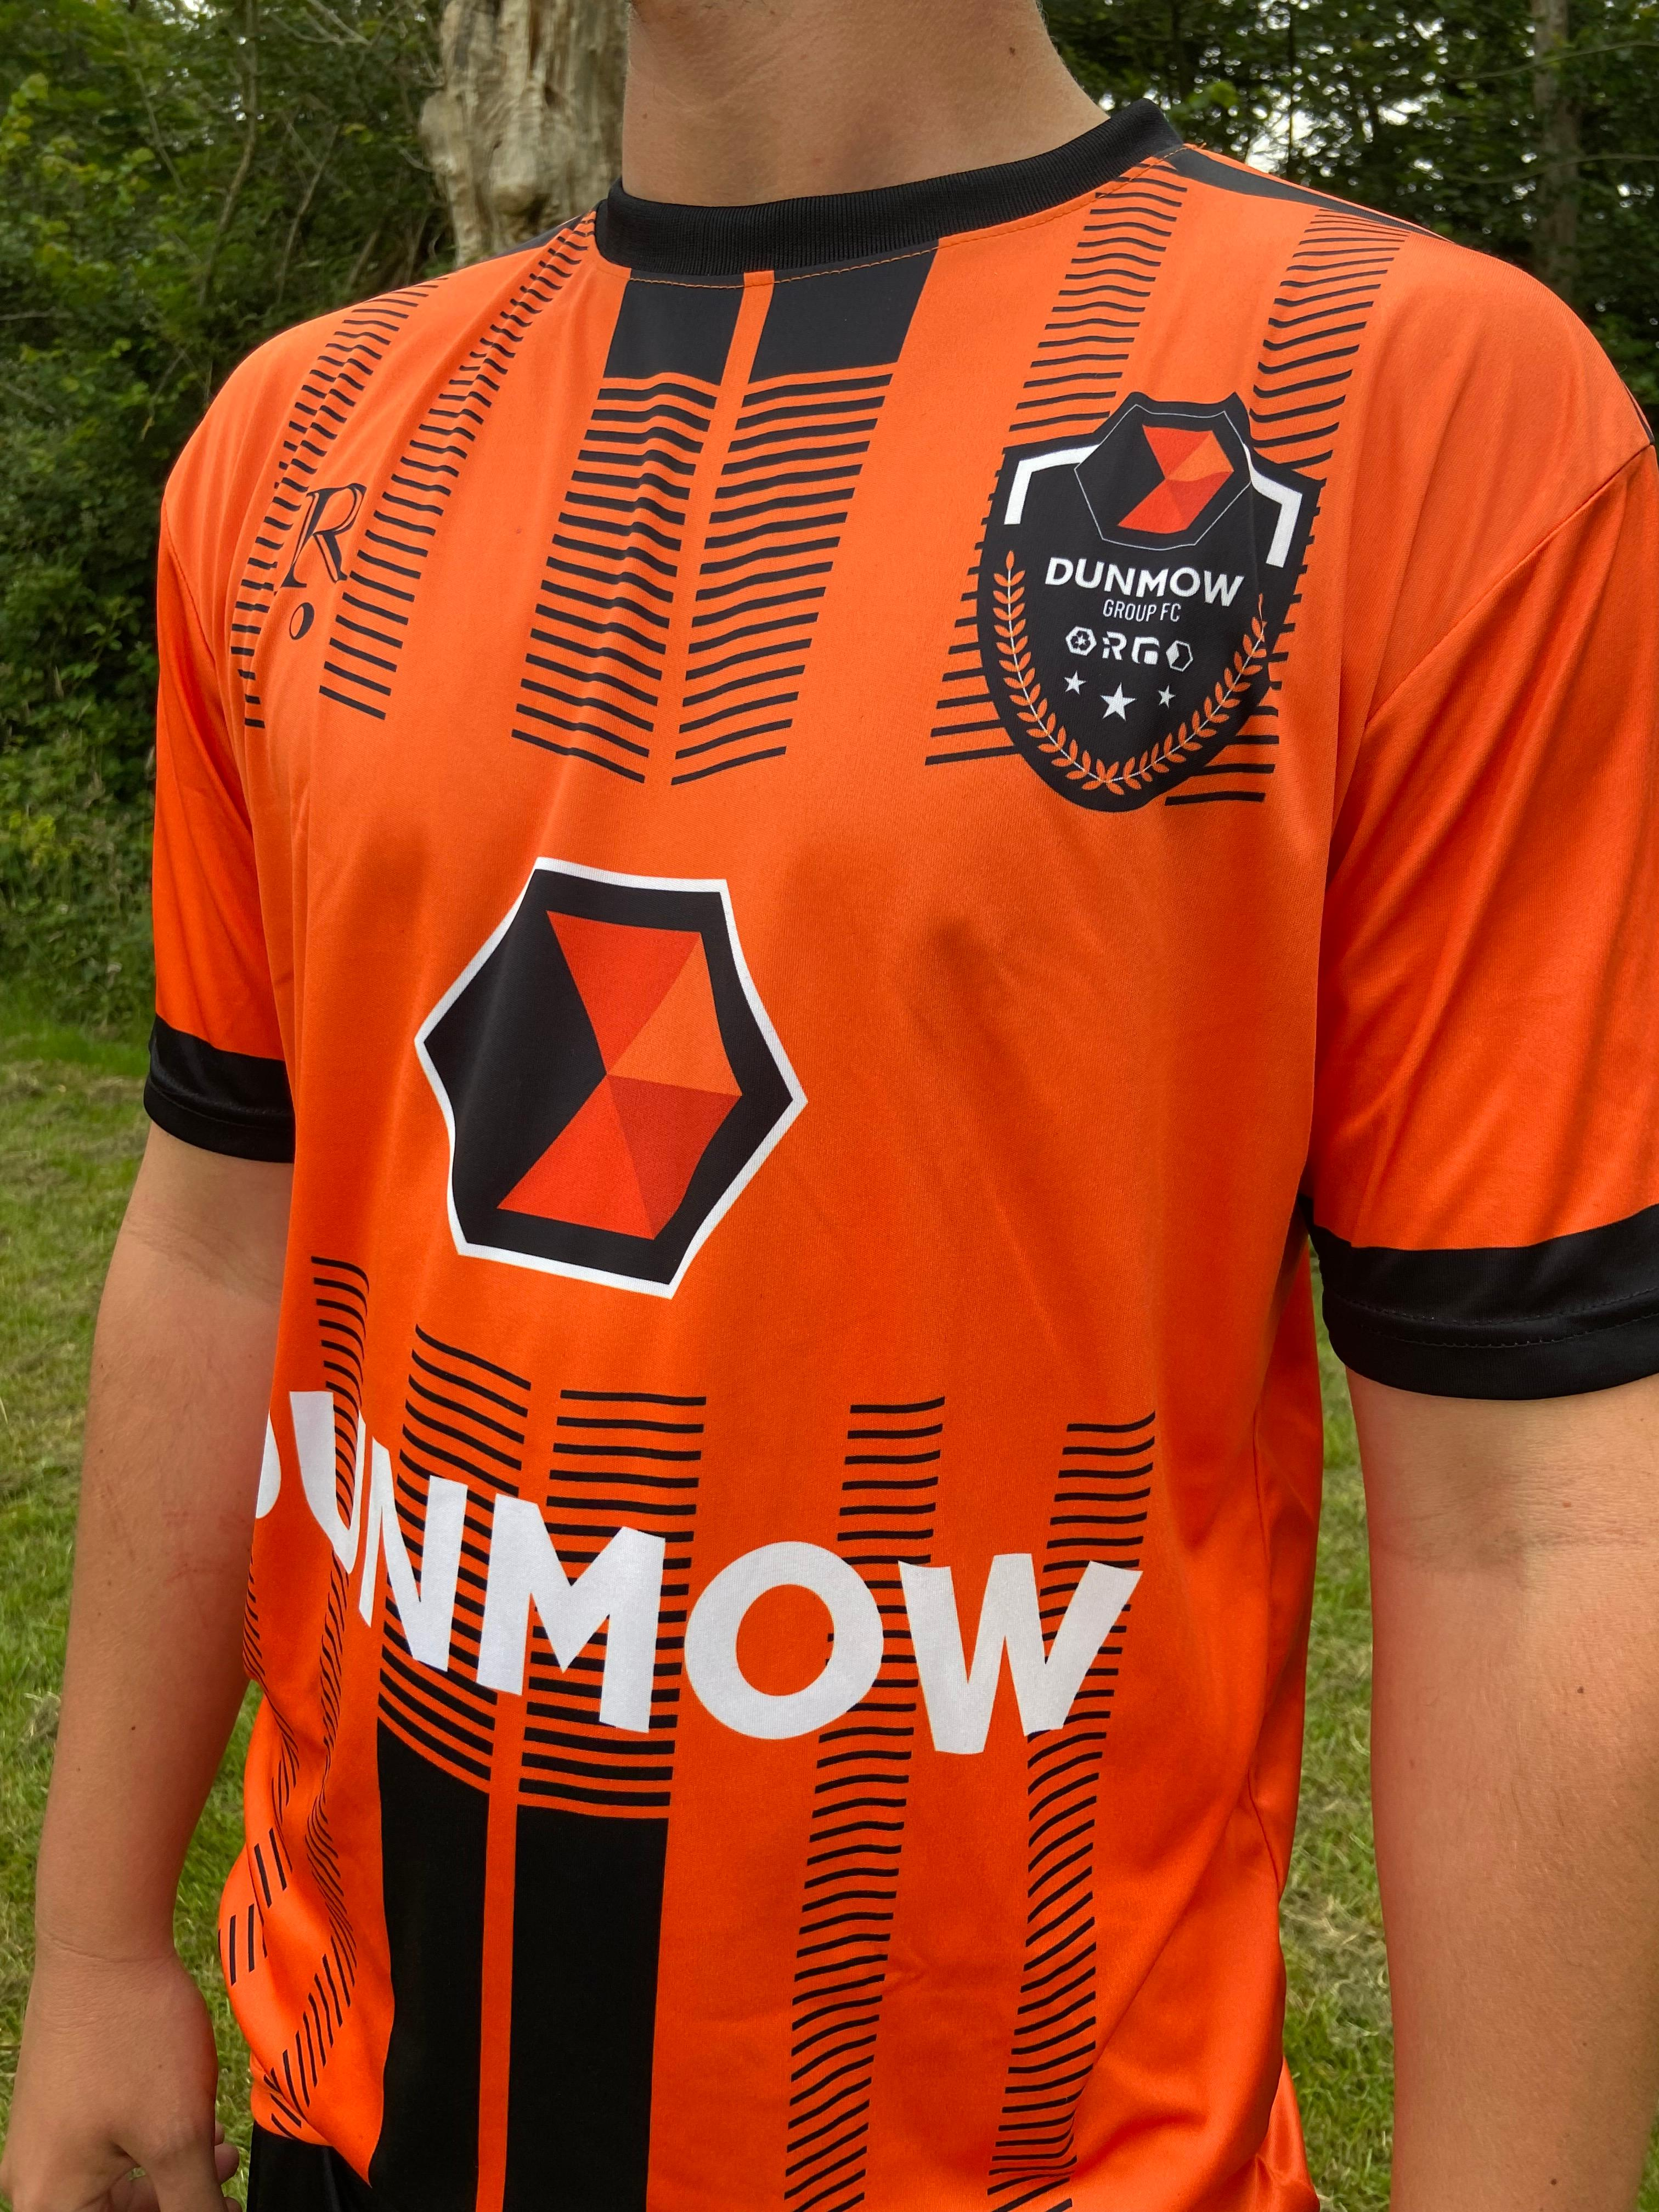 Dunmow-Group-Waste-World-Cup-Kit